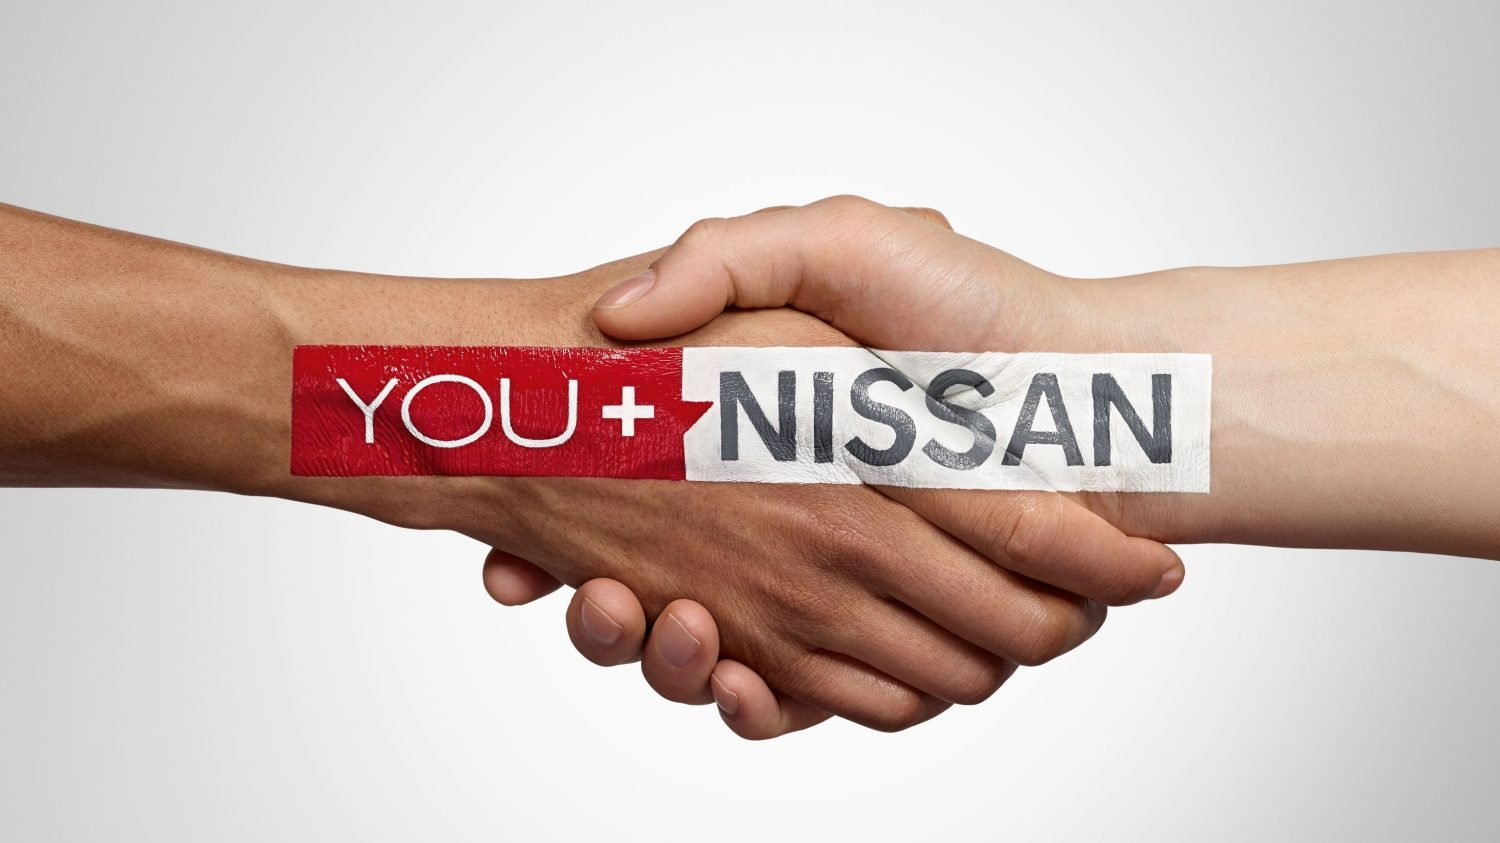 NISSAN – Clients – YOU+NISSAN